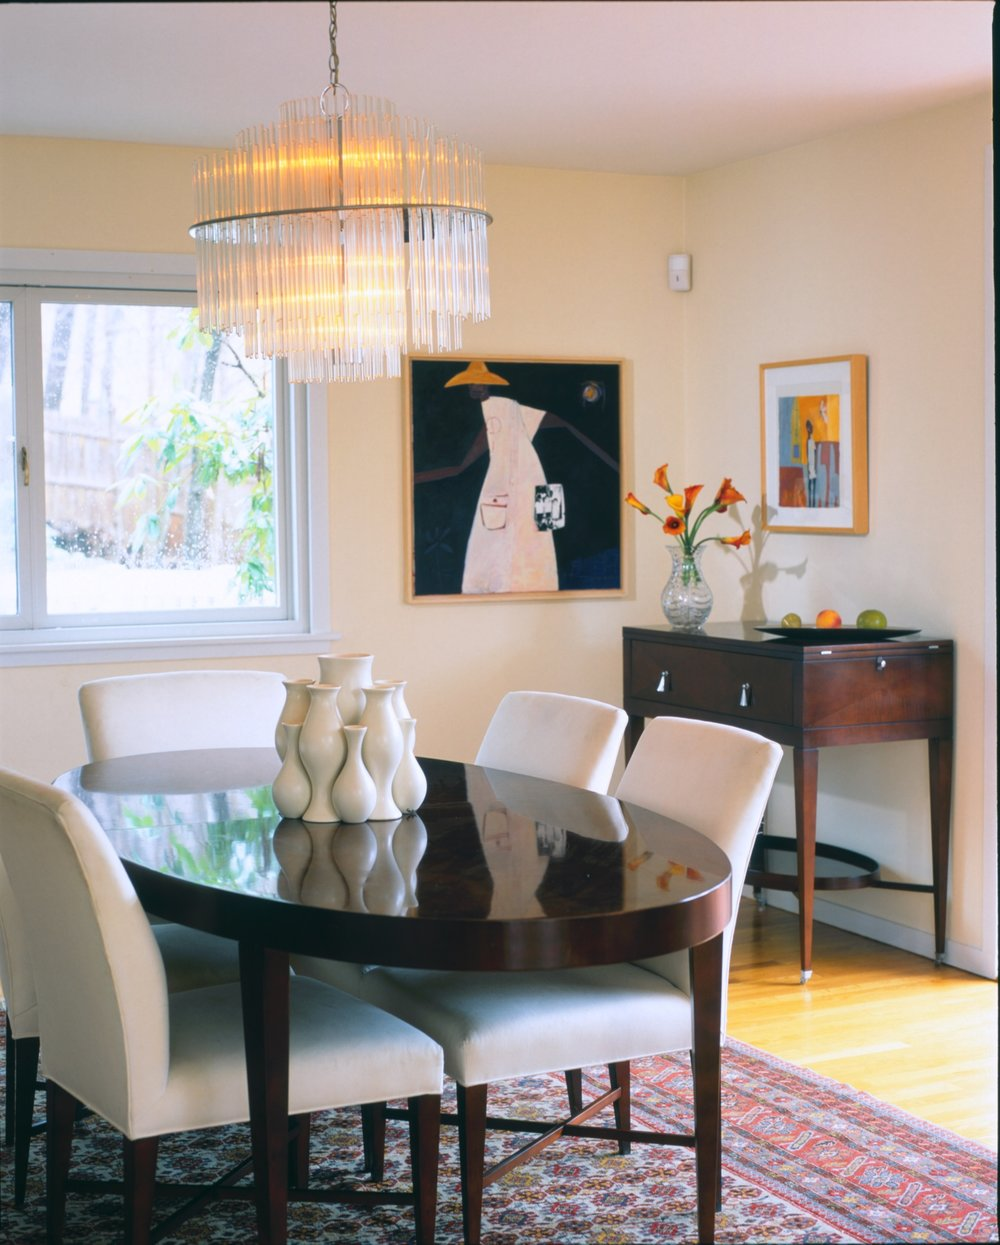 Modern dining room interior with four white chairs